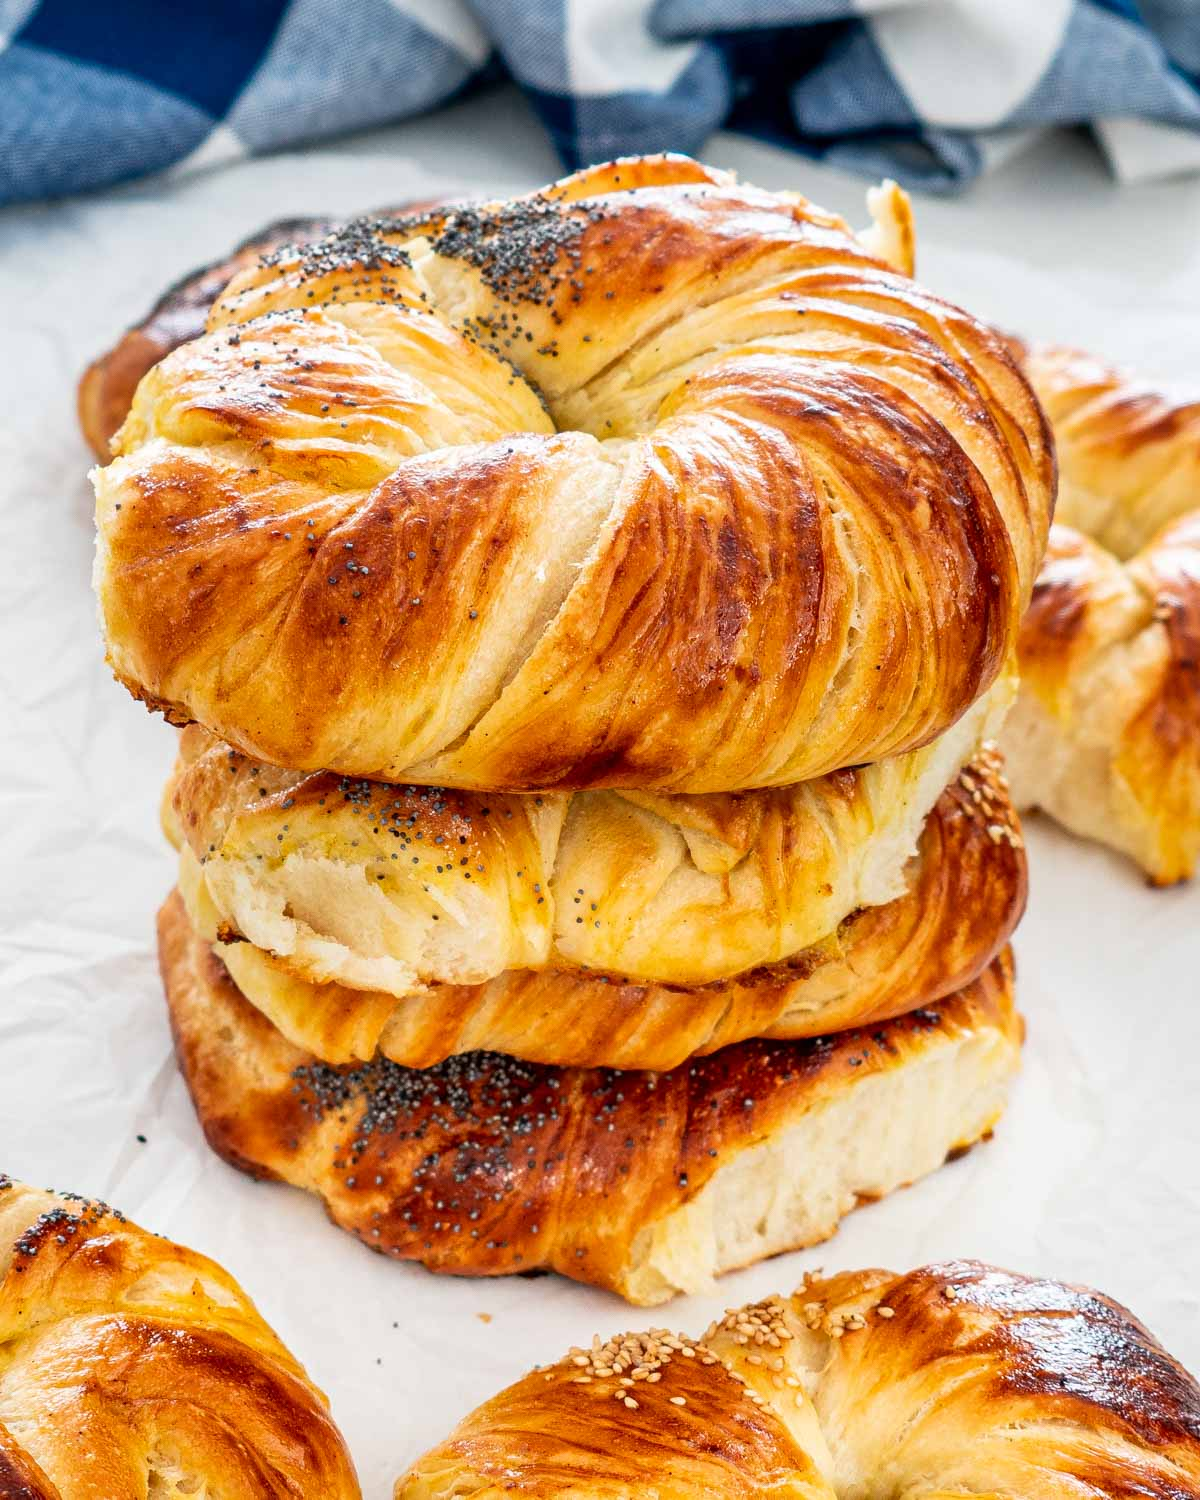 a stack of freshly baked brioche buns.